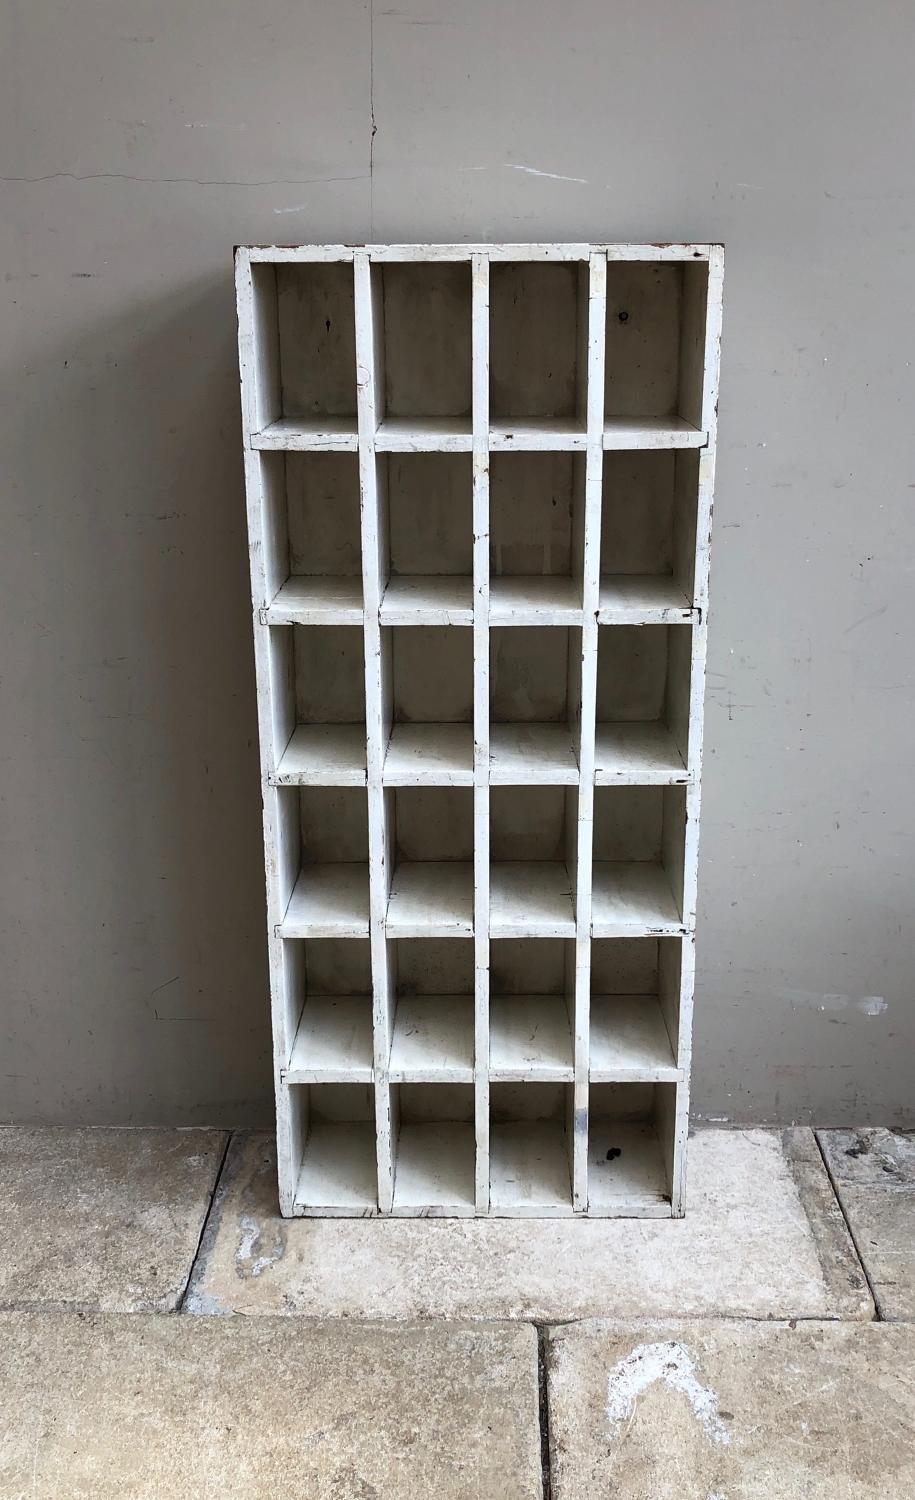 Early 20thC Pine Set of 24 Pigeon Holes - Perfect for Spice Bottles